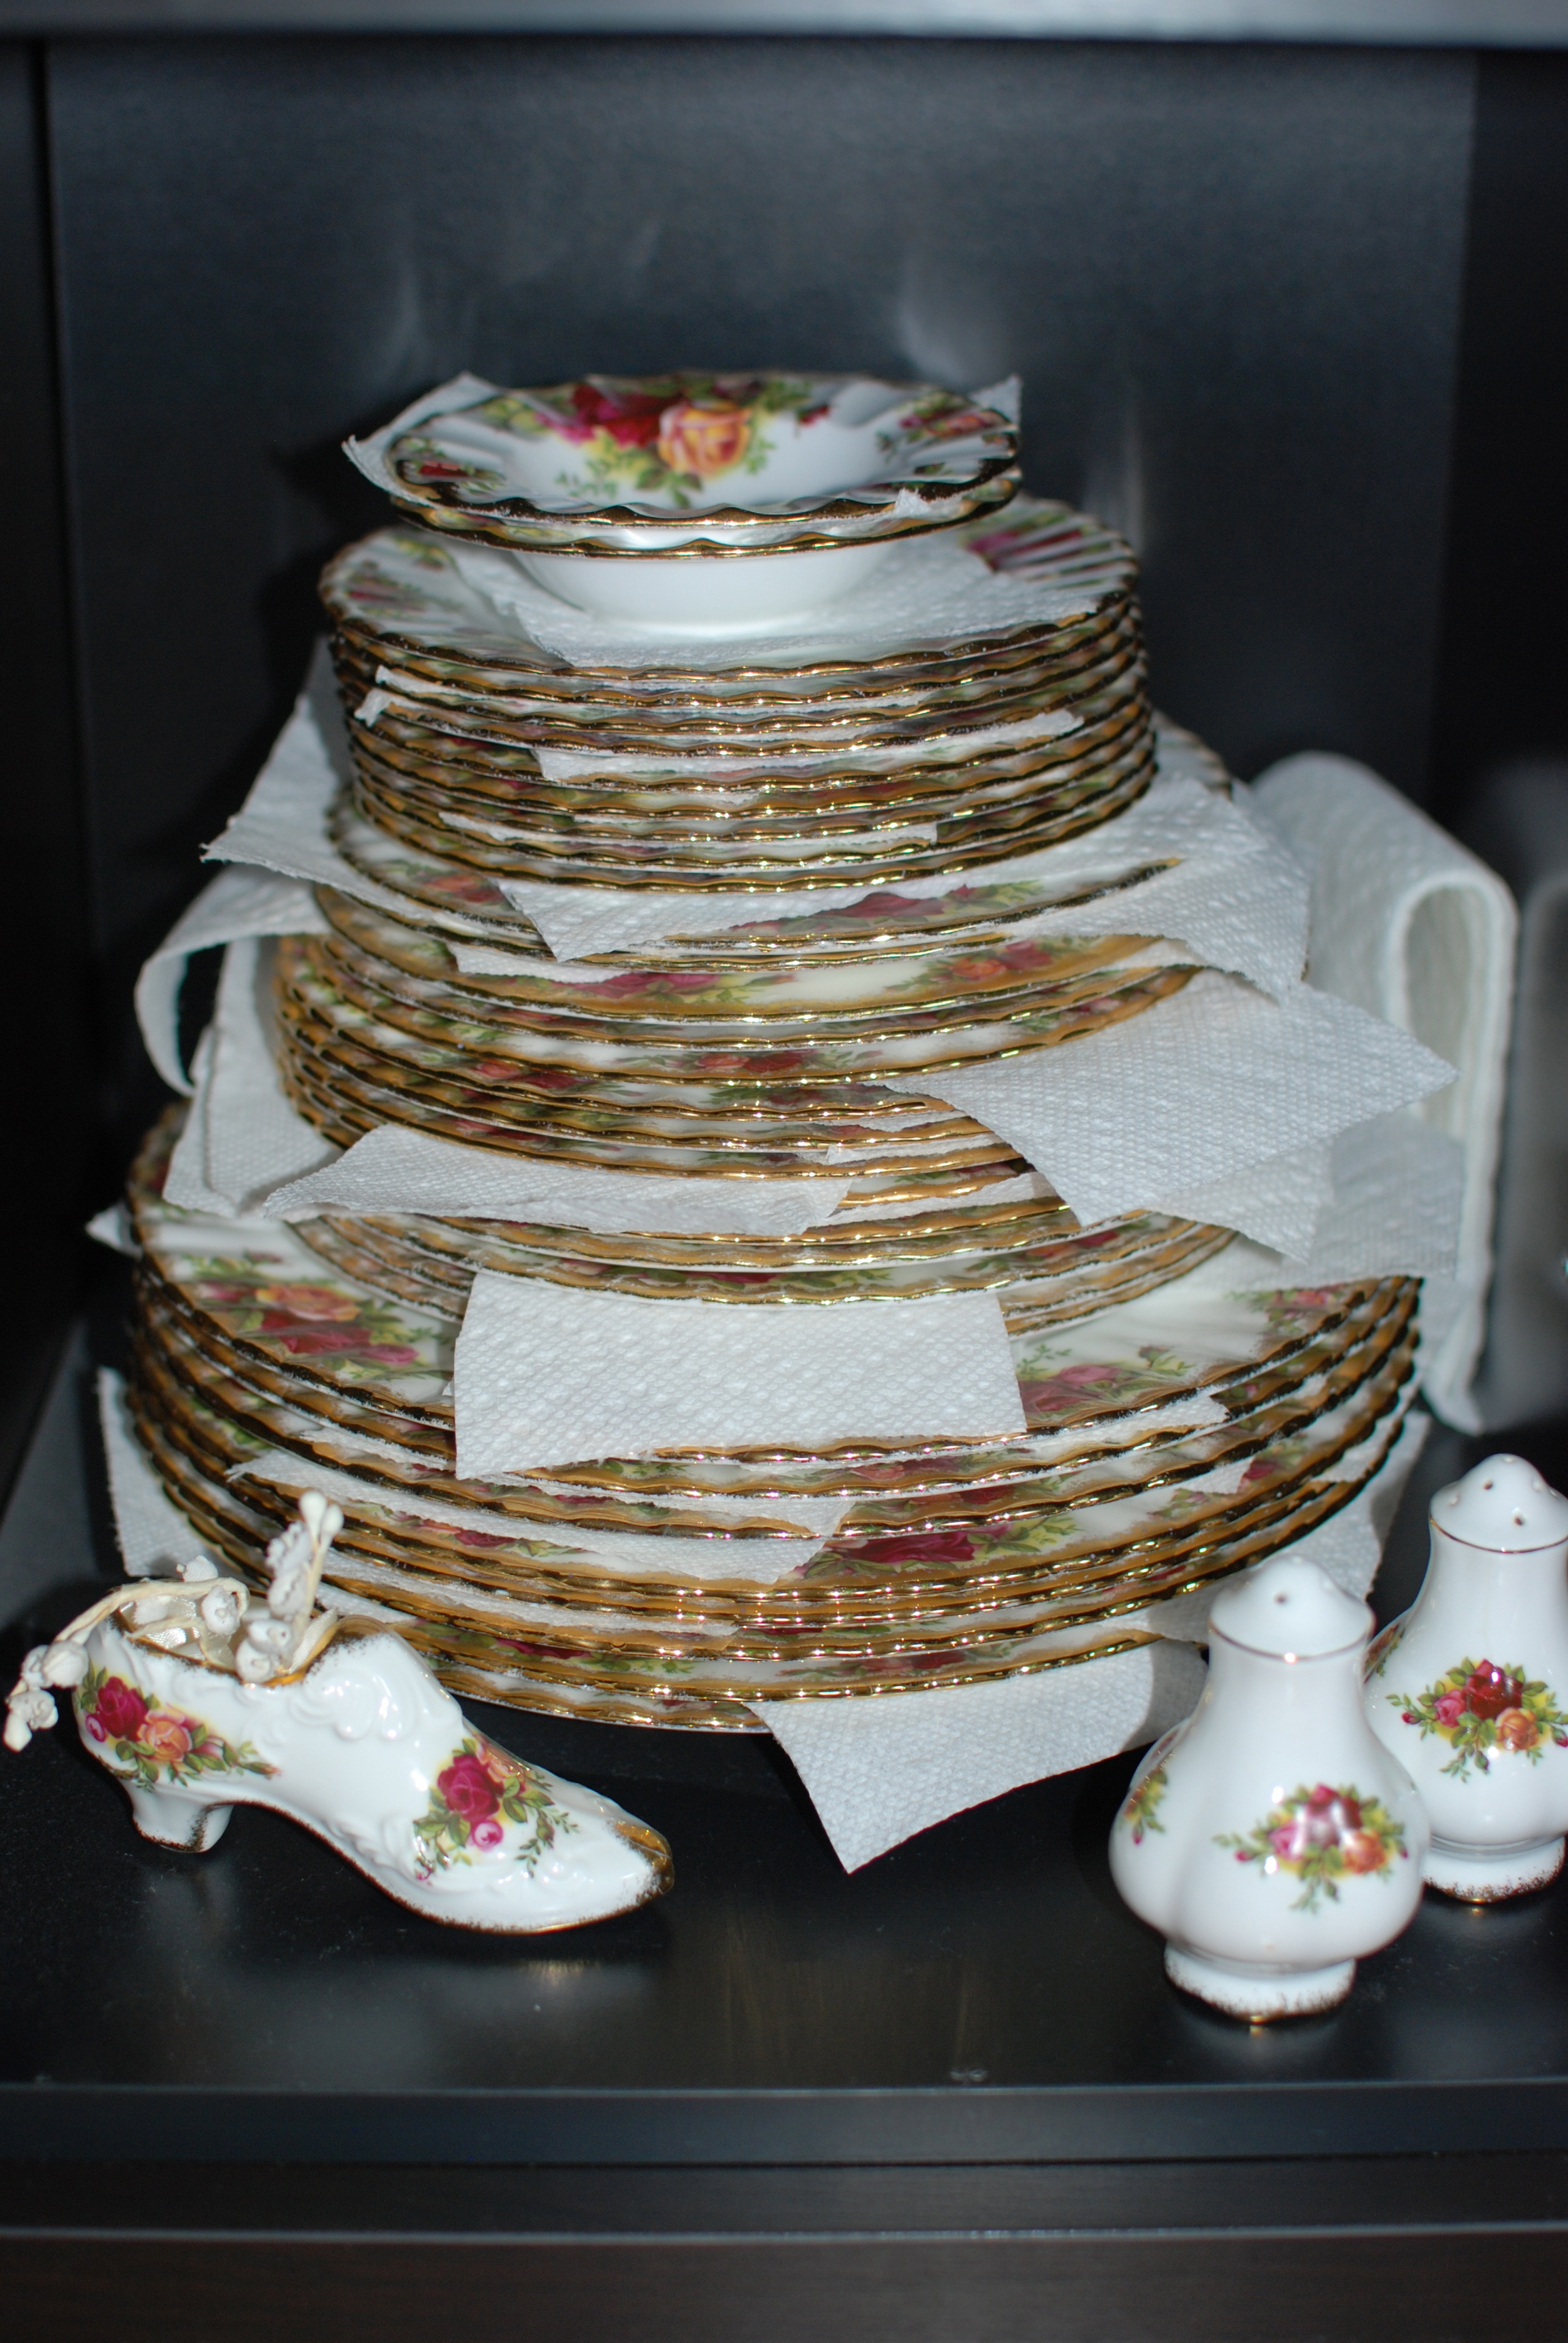 All the Plates